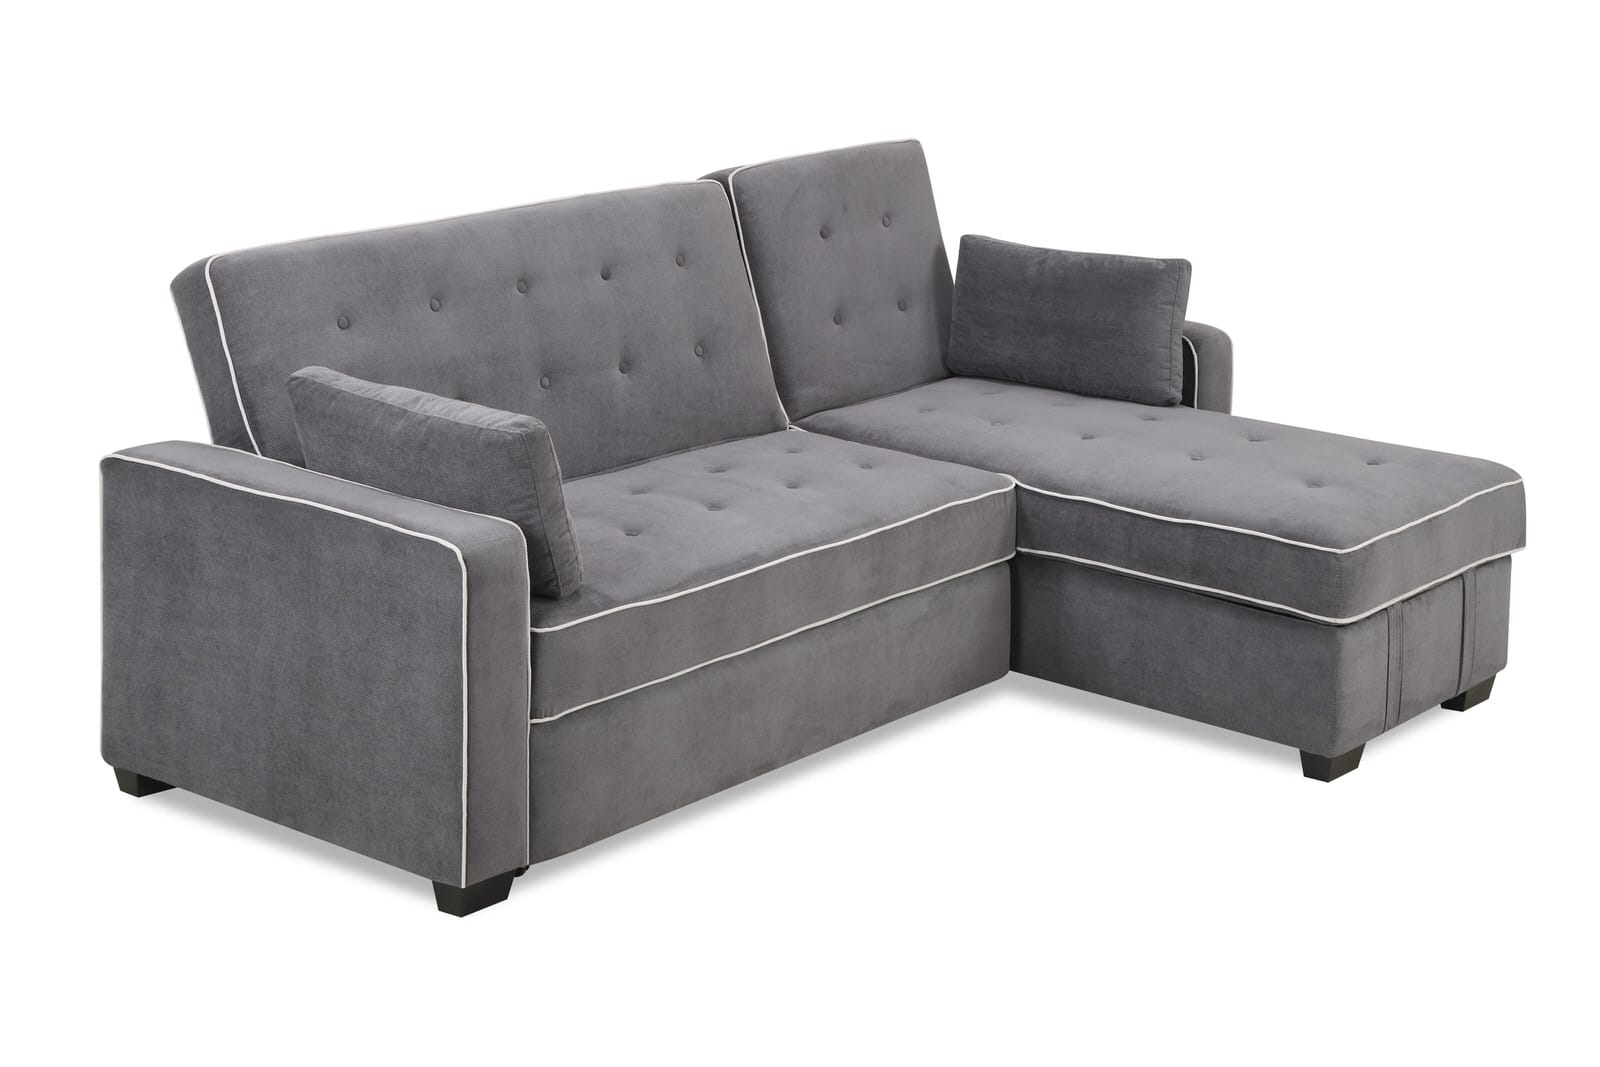 Augustine King Size Sofa Bed Moon Grey By Serta / Lifestyle (Lifestyle  Solutions)